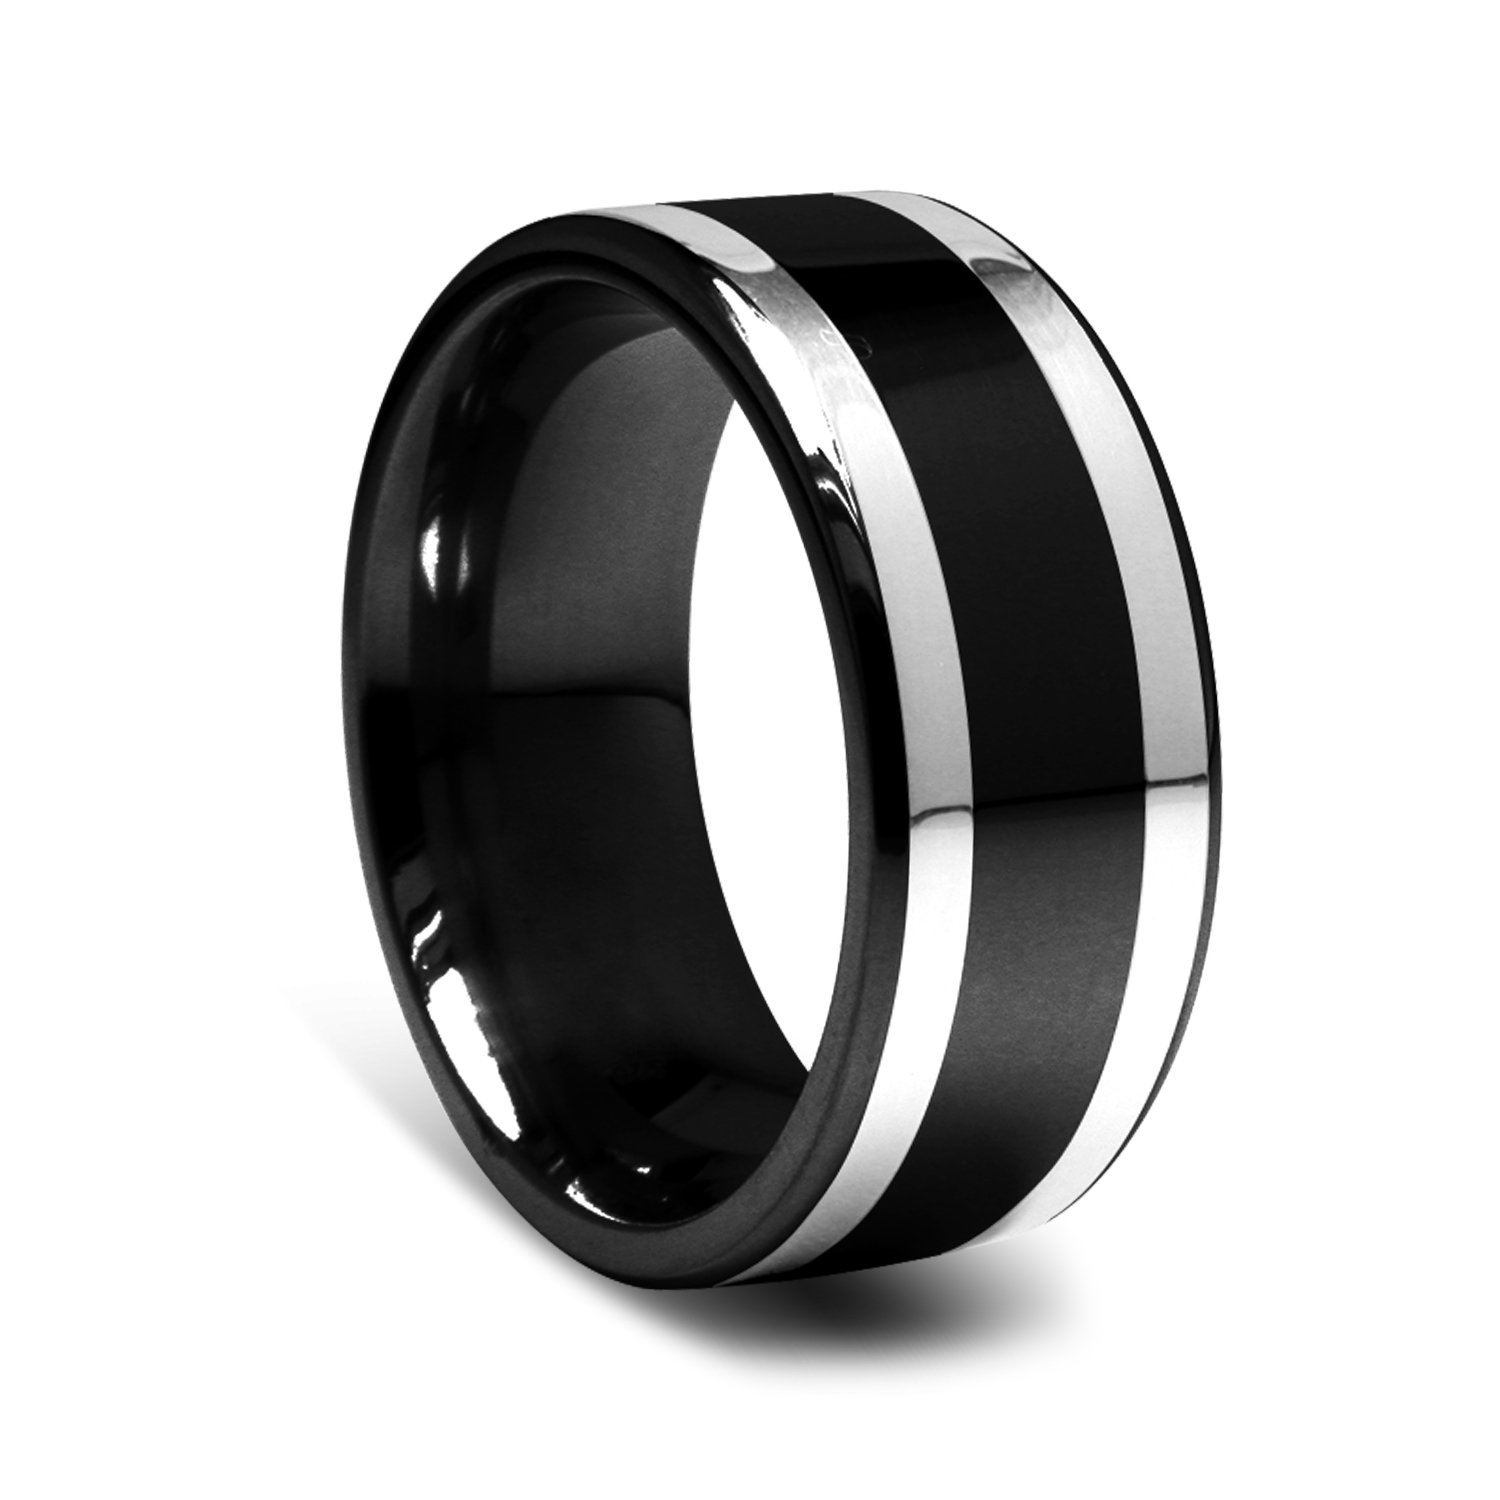 size product jewelers mens dhgate metal jewelry com vnox wedding ring necklace diamond bands black from engagement usa titanium